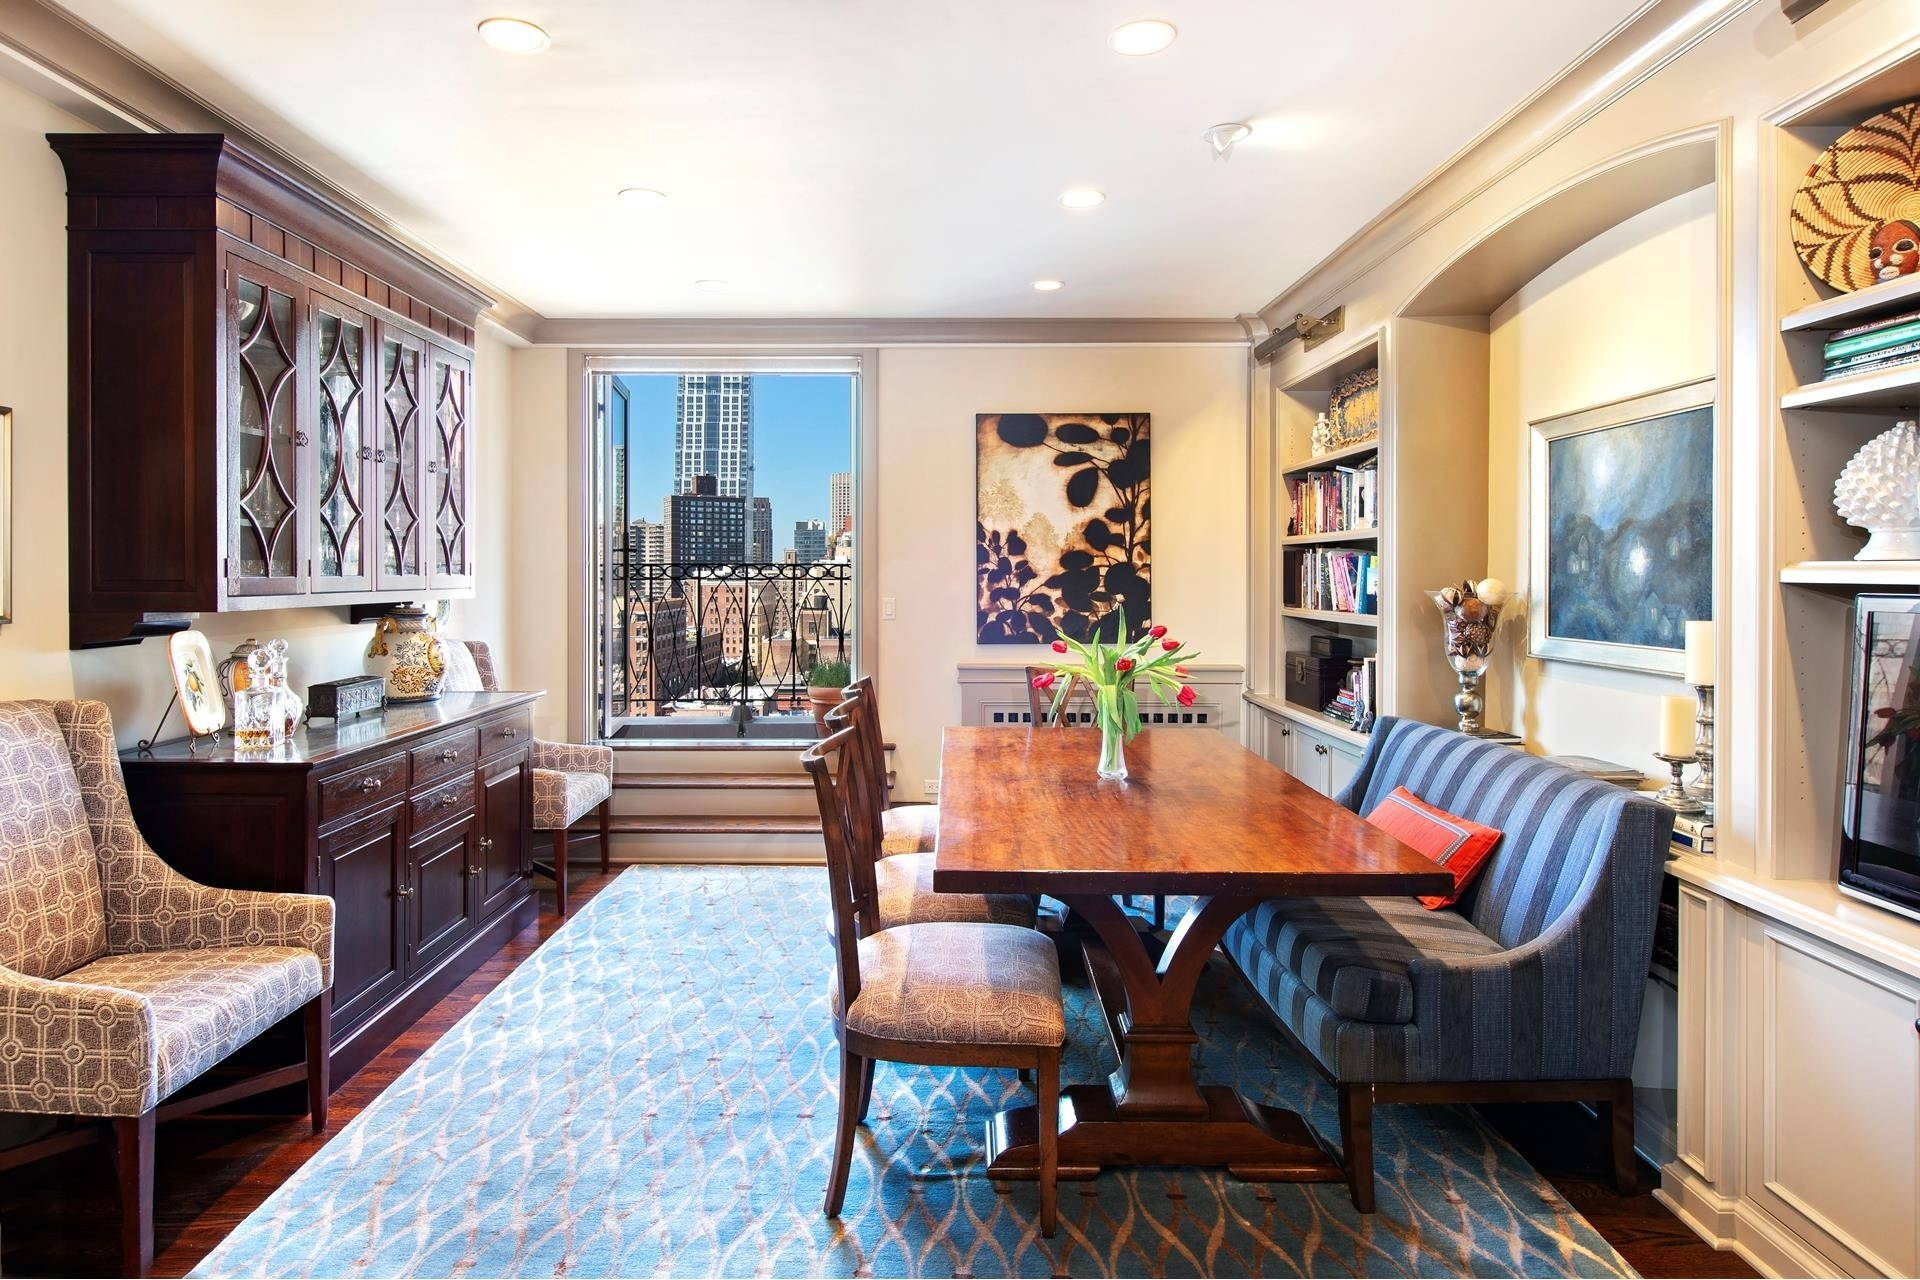 4. Co-op Properties 為 特賣 在 101 Central Park West, 16G Lincoln Square, 纽约, NY 10023